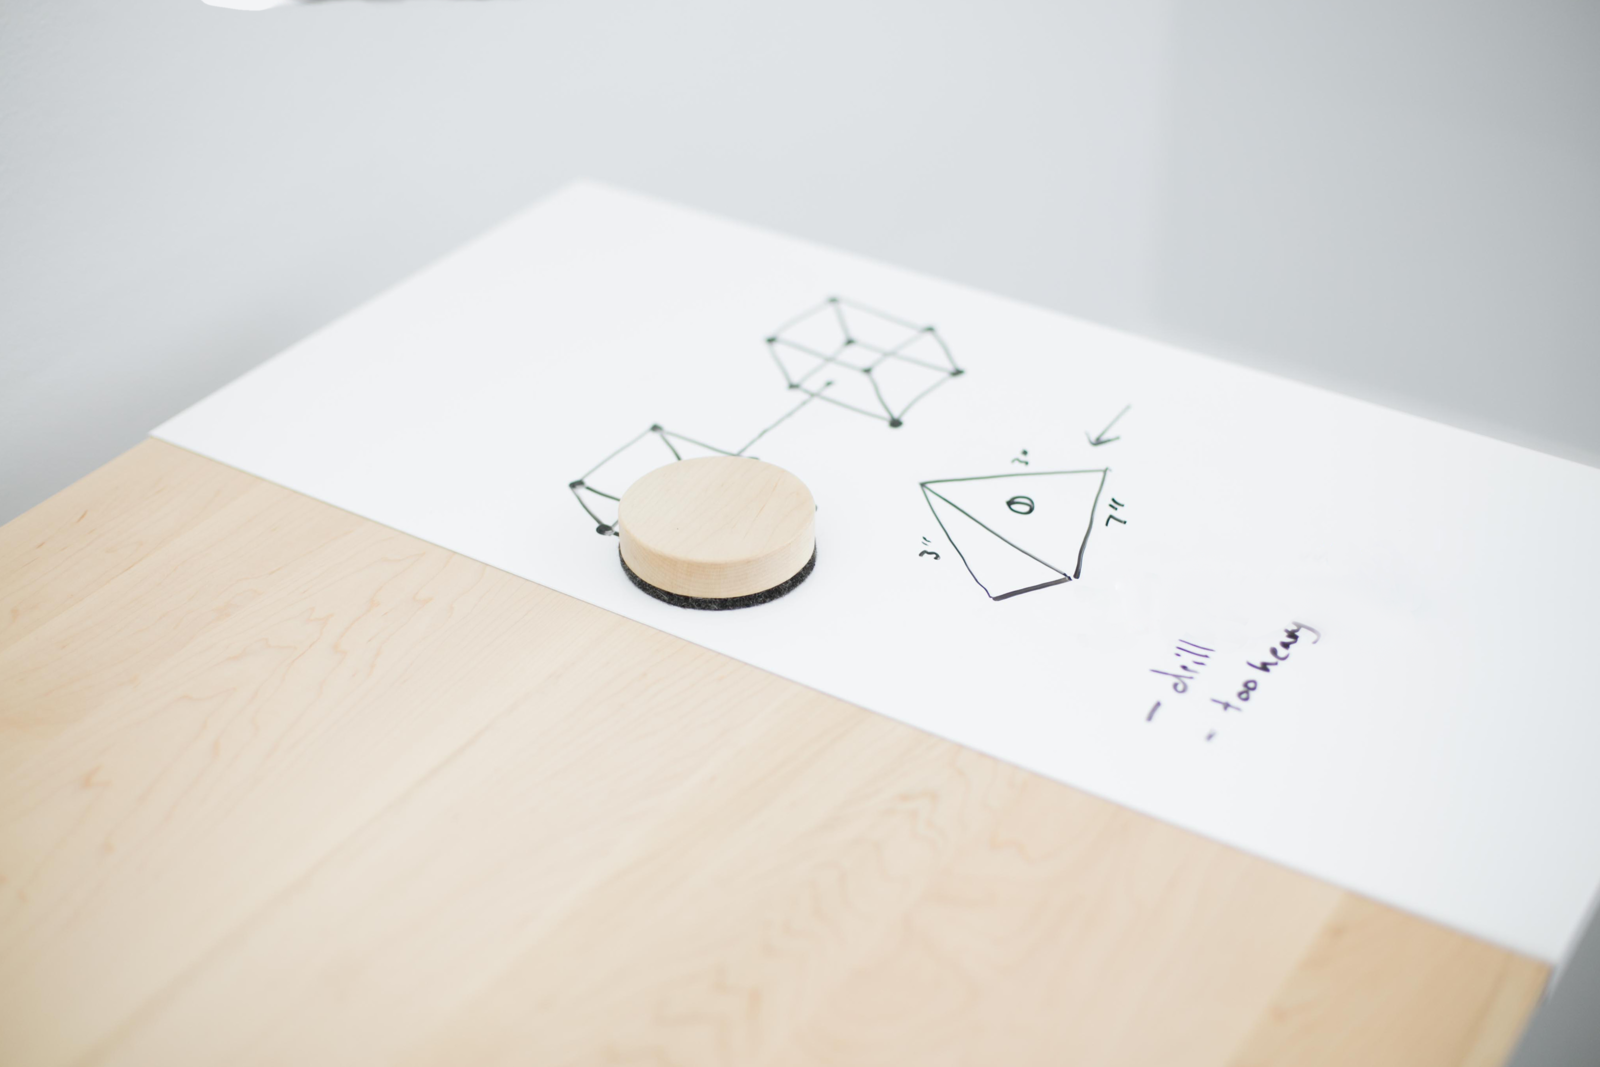 """Both the sitting and standing versions of DESK 01, a collaboration between Artifox and IdeaPaint, are outfitted with dry erase surfaces for recording sudden bursts of creativity.  Search """"11plus world desk clock"""" from A Handpicked Selection of Office Tools for Cutting Clutter and Jumpstarting Creativity"""